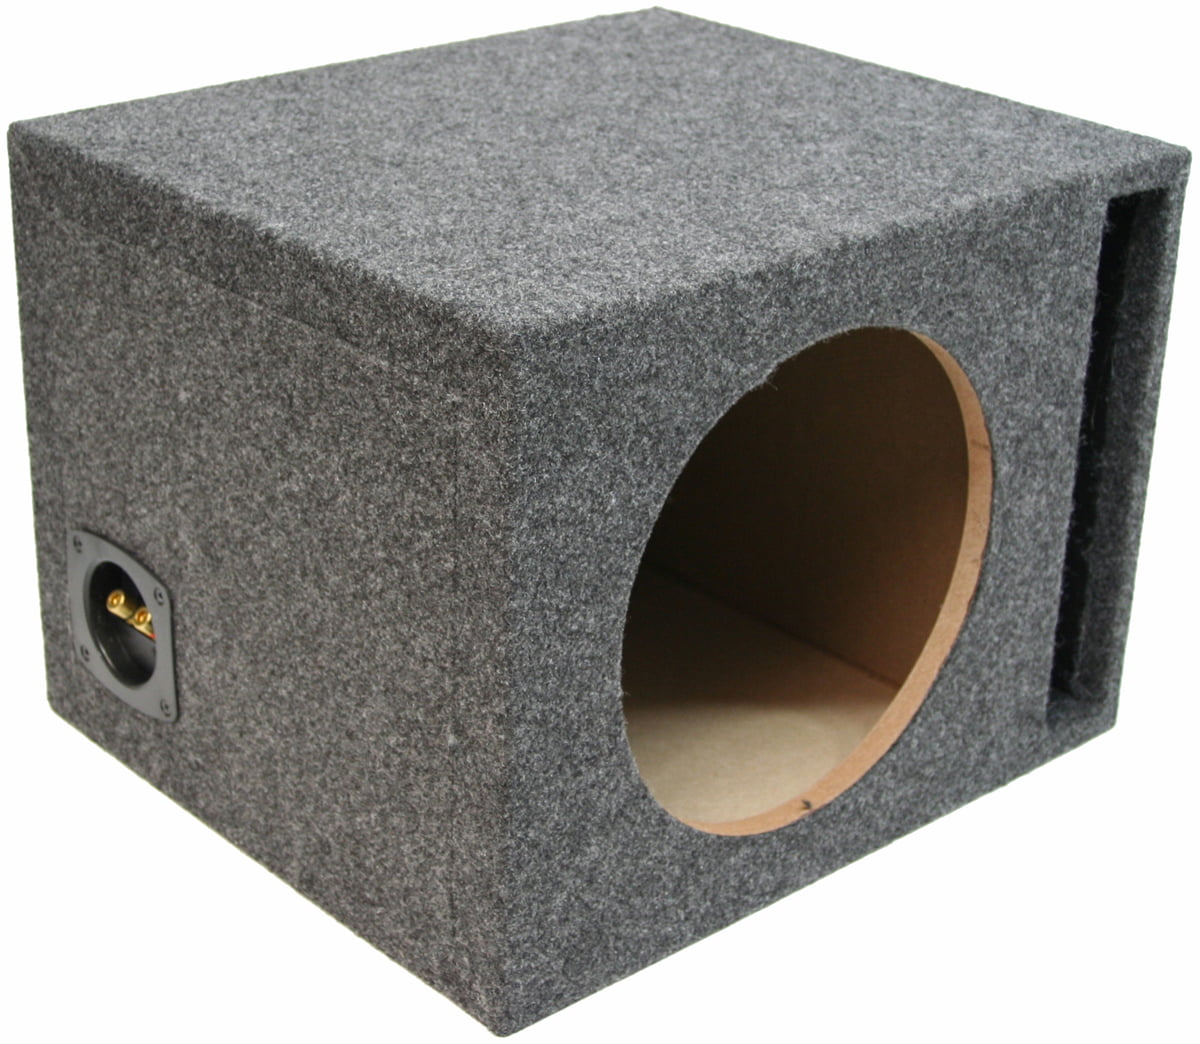 Single 12 Inch Ported Subwoofer Box Car Audio Stereo Bass Speaker Sub Enclosure Walmart Com Walmart Com